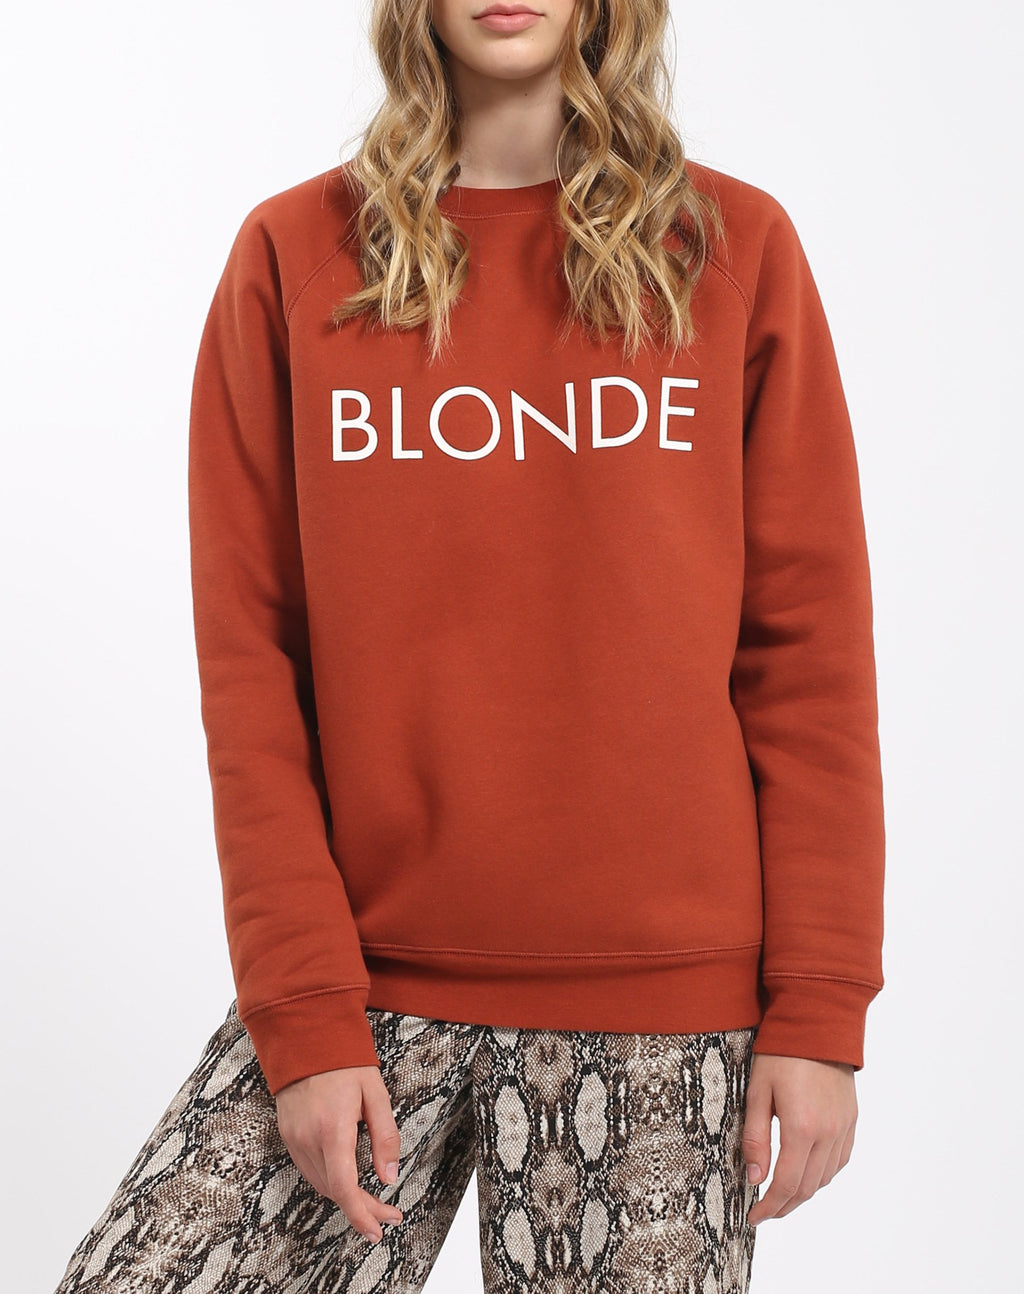 """BLONDE"" Classic Crew Neck Sweatshirt 